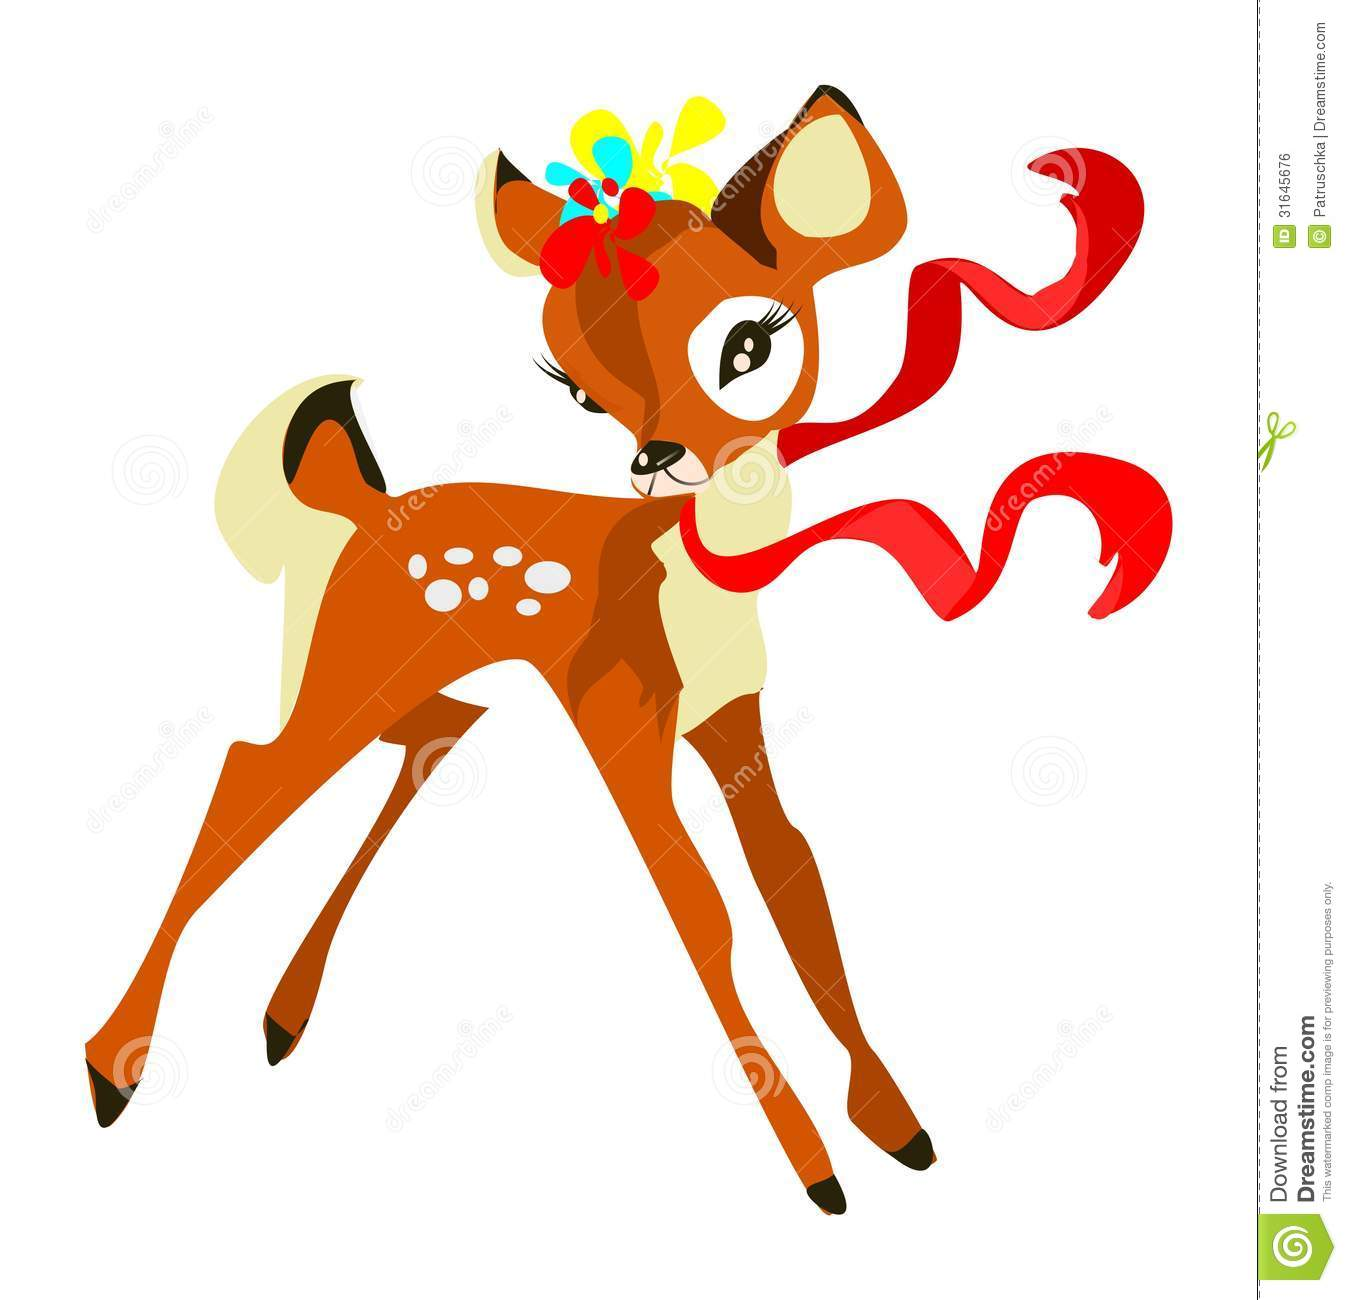 hight resolution of hand drawn cute christmas character source rudolph the red nosed reindeer clipart at getdrawings com free for